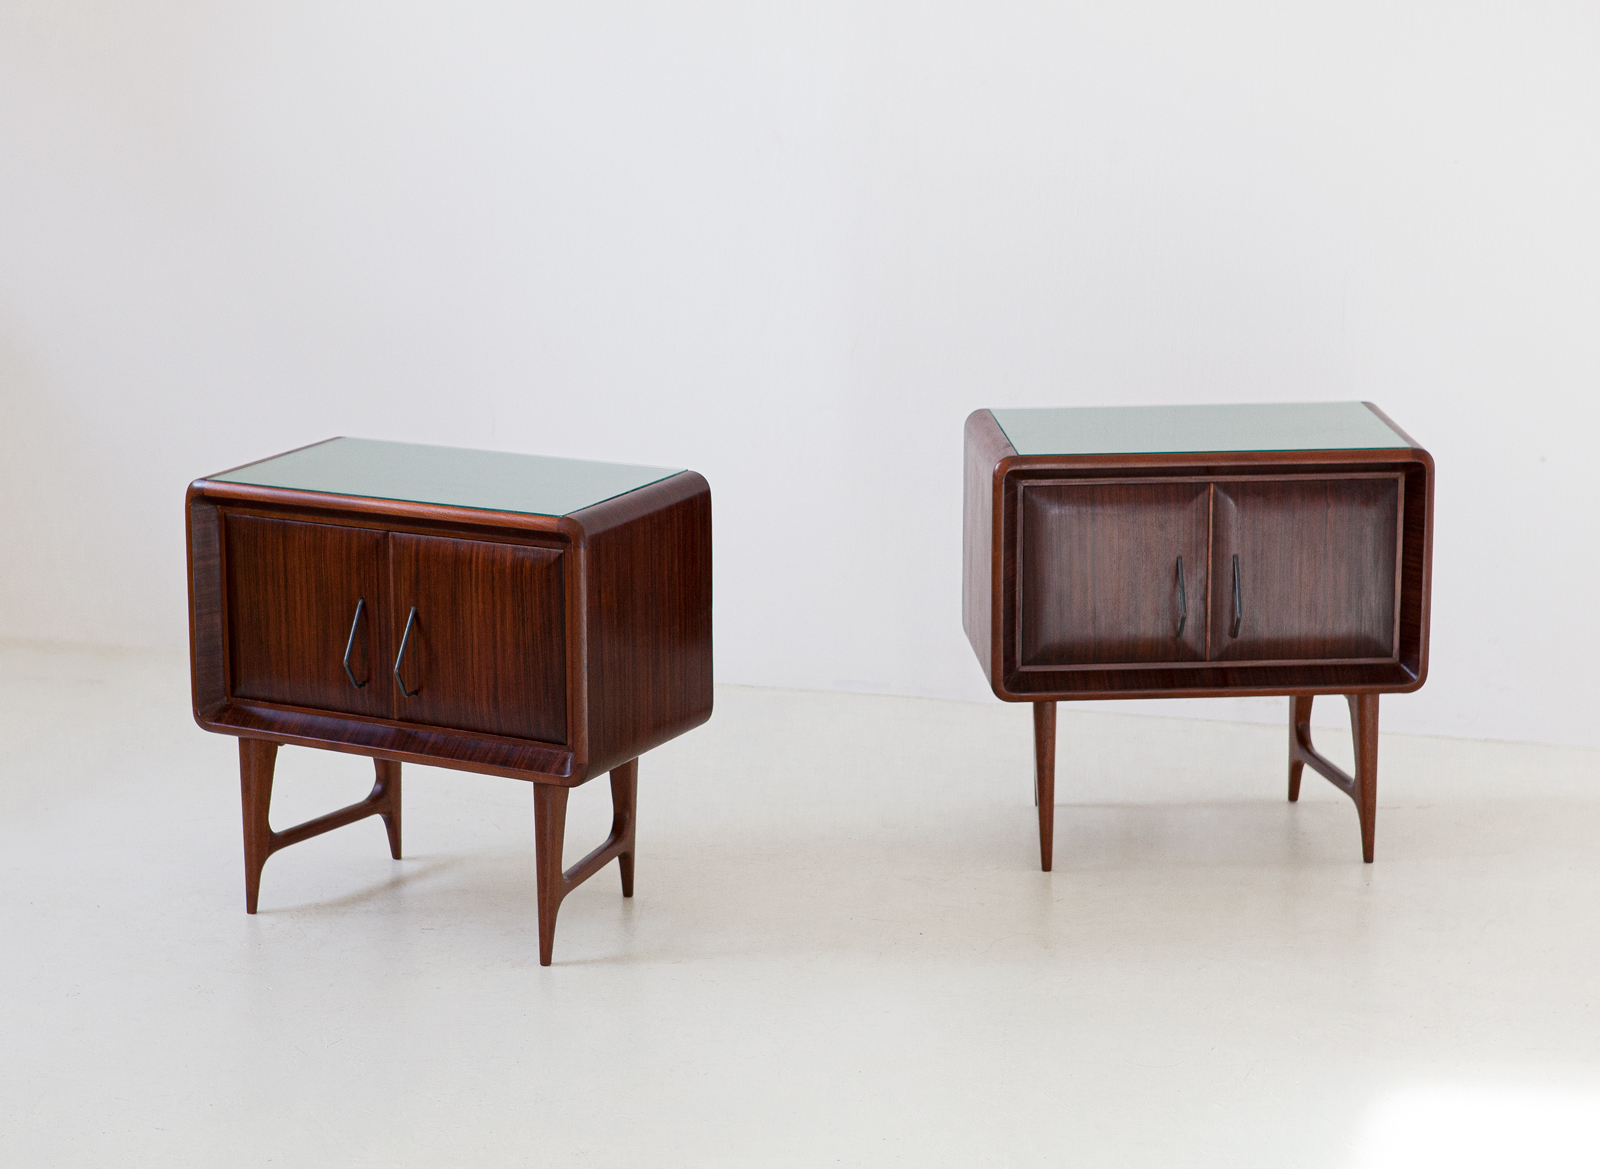 1950s-italian-rosewood-bedside-tables-with-green-glass-top-3-bt83